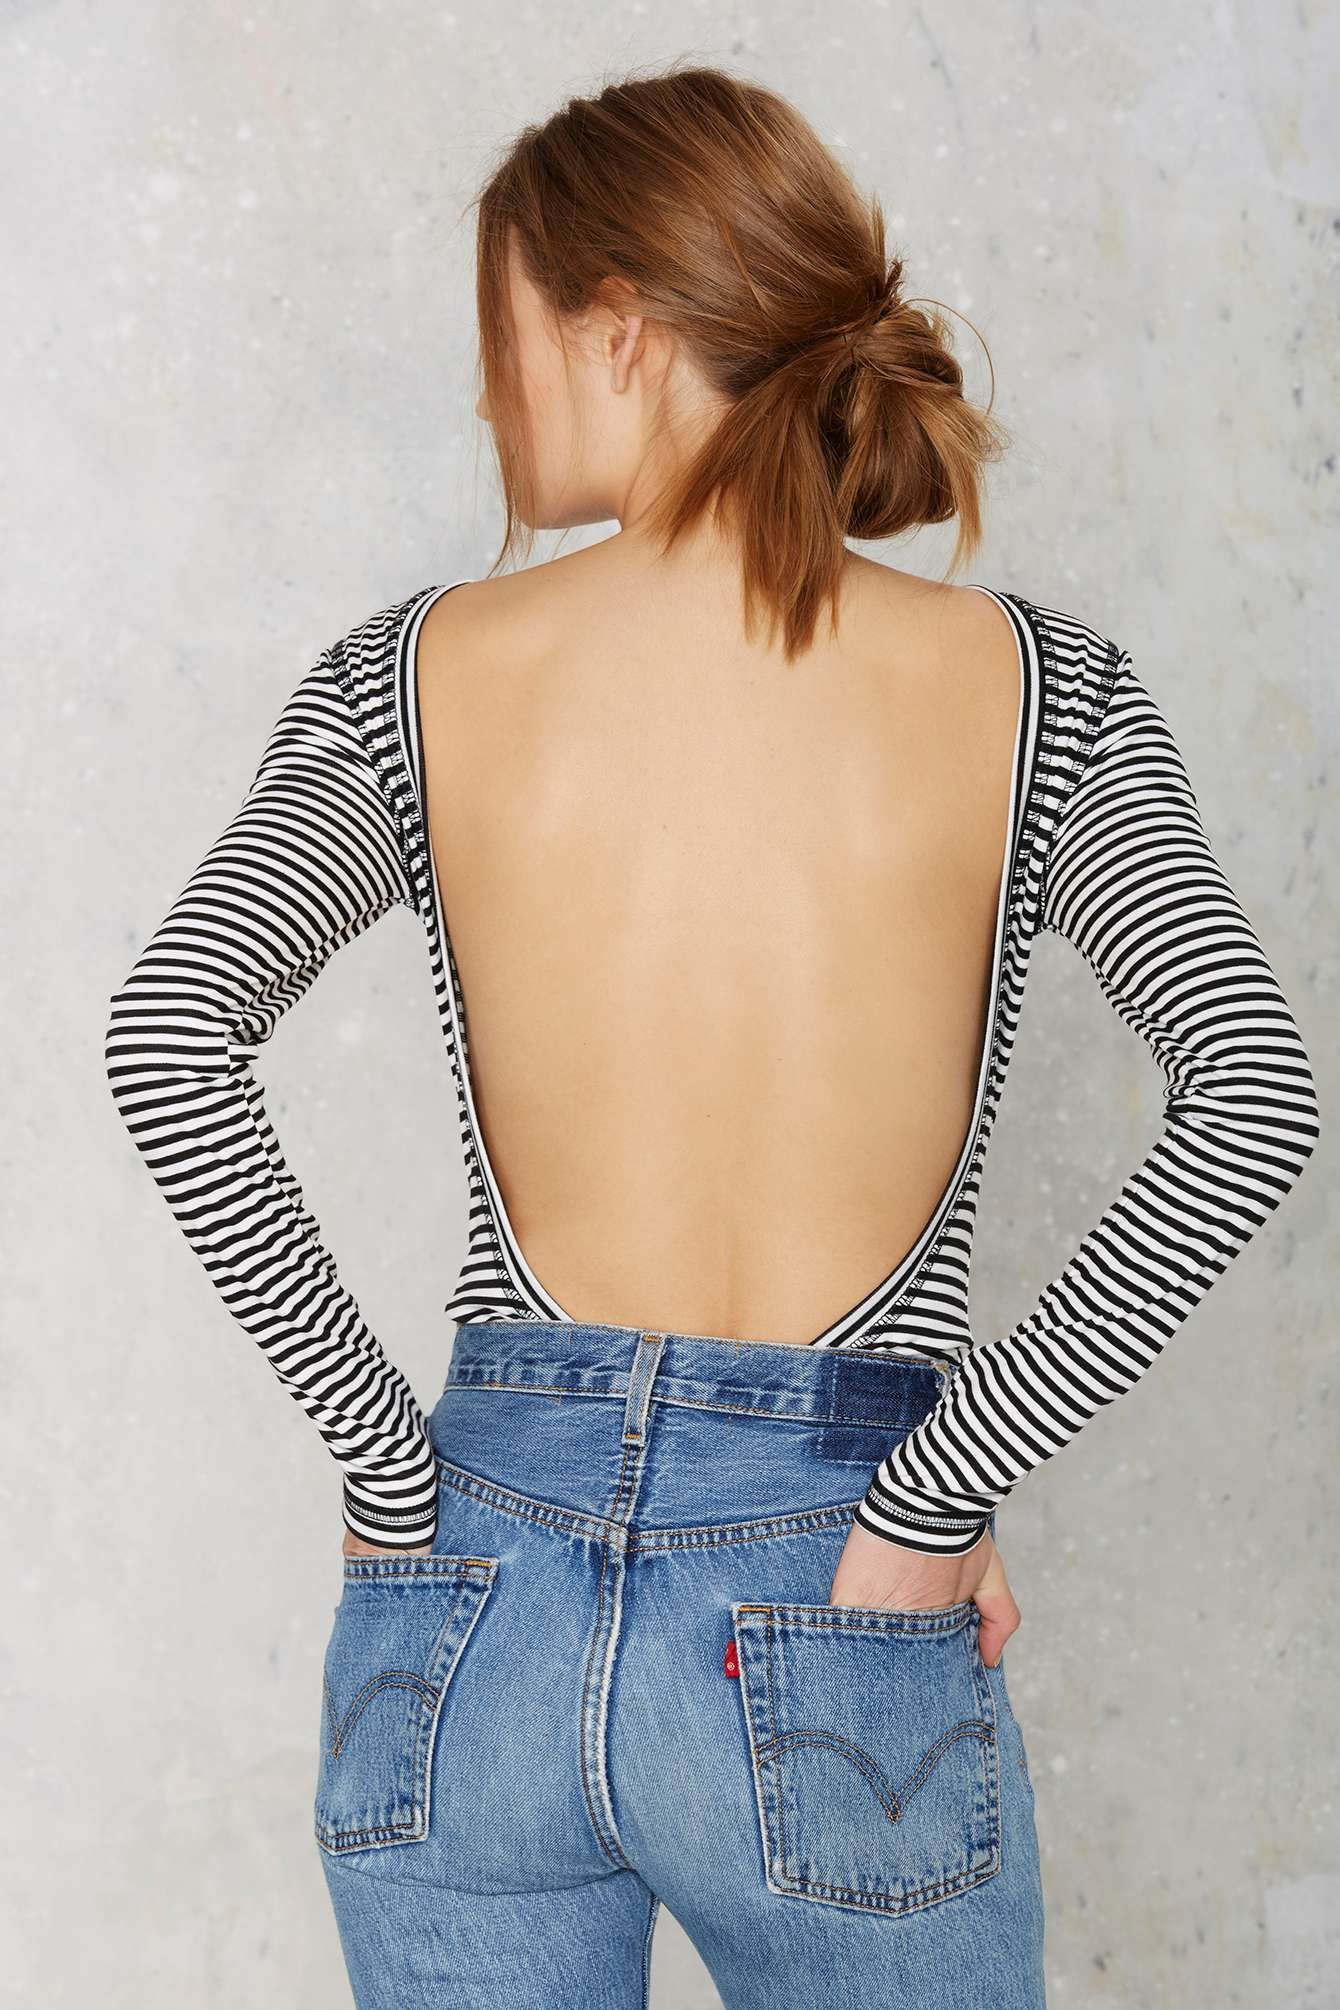 Nasty Gal Scouted Open Back Bodysuit - Stripes | Shop Clothes at Nasty Gal!